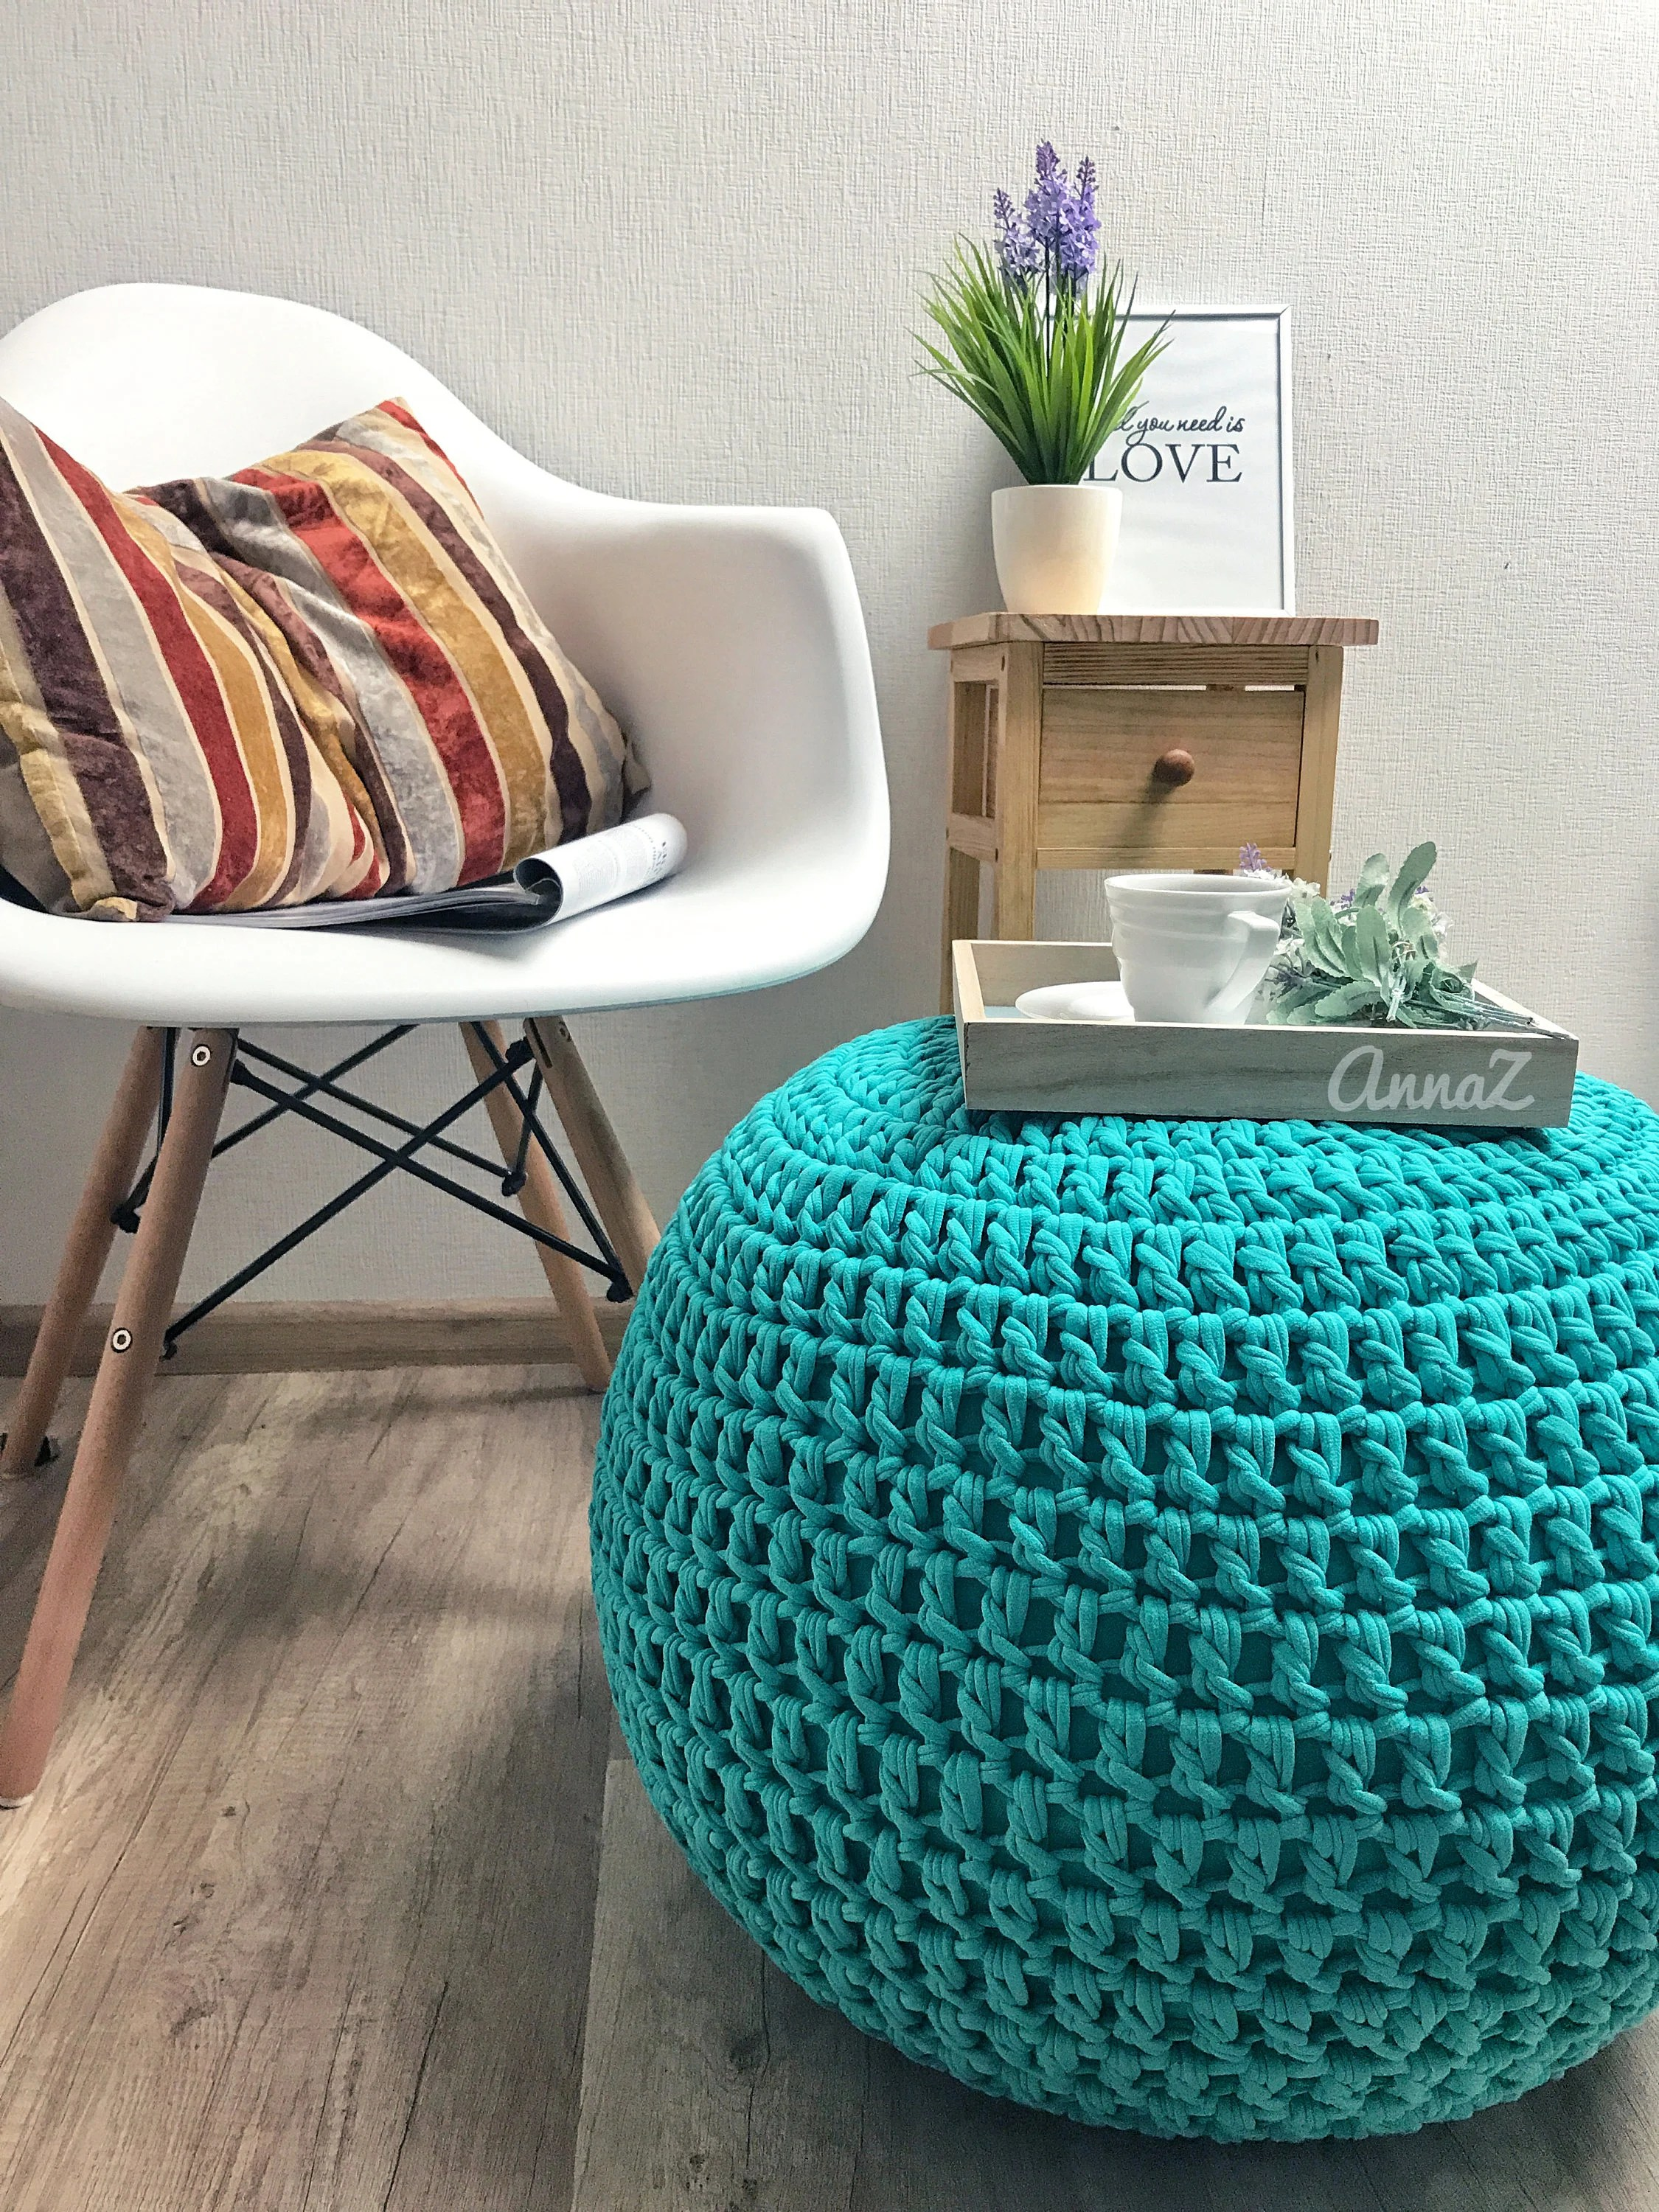 Pouf Mint Mint Chunky Pouf Ottoman Blue Green Pouf Knited Pouf Handmade Floor Cushion Footstool Crochet Pouf